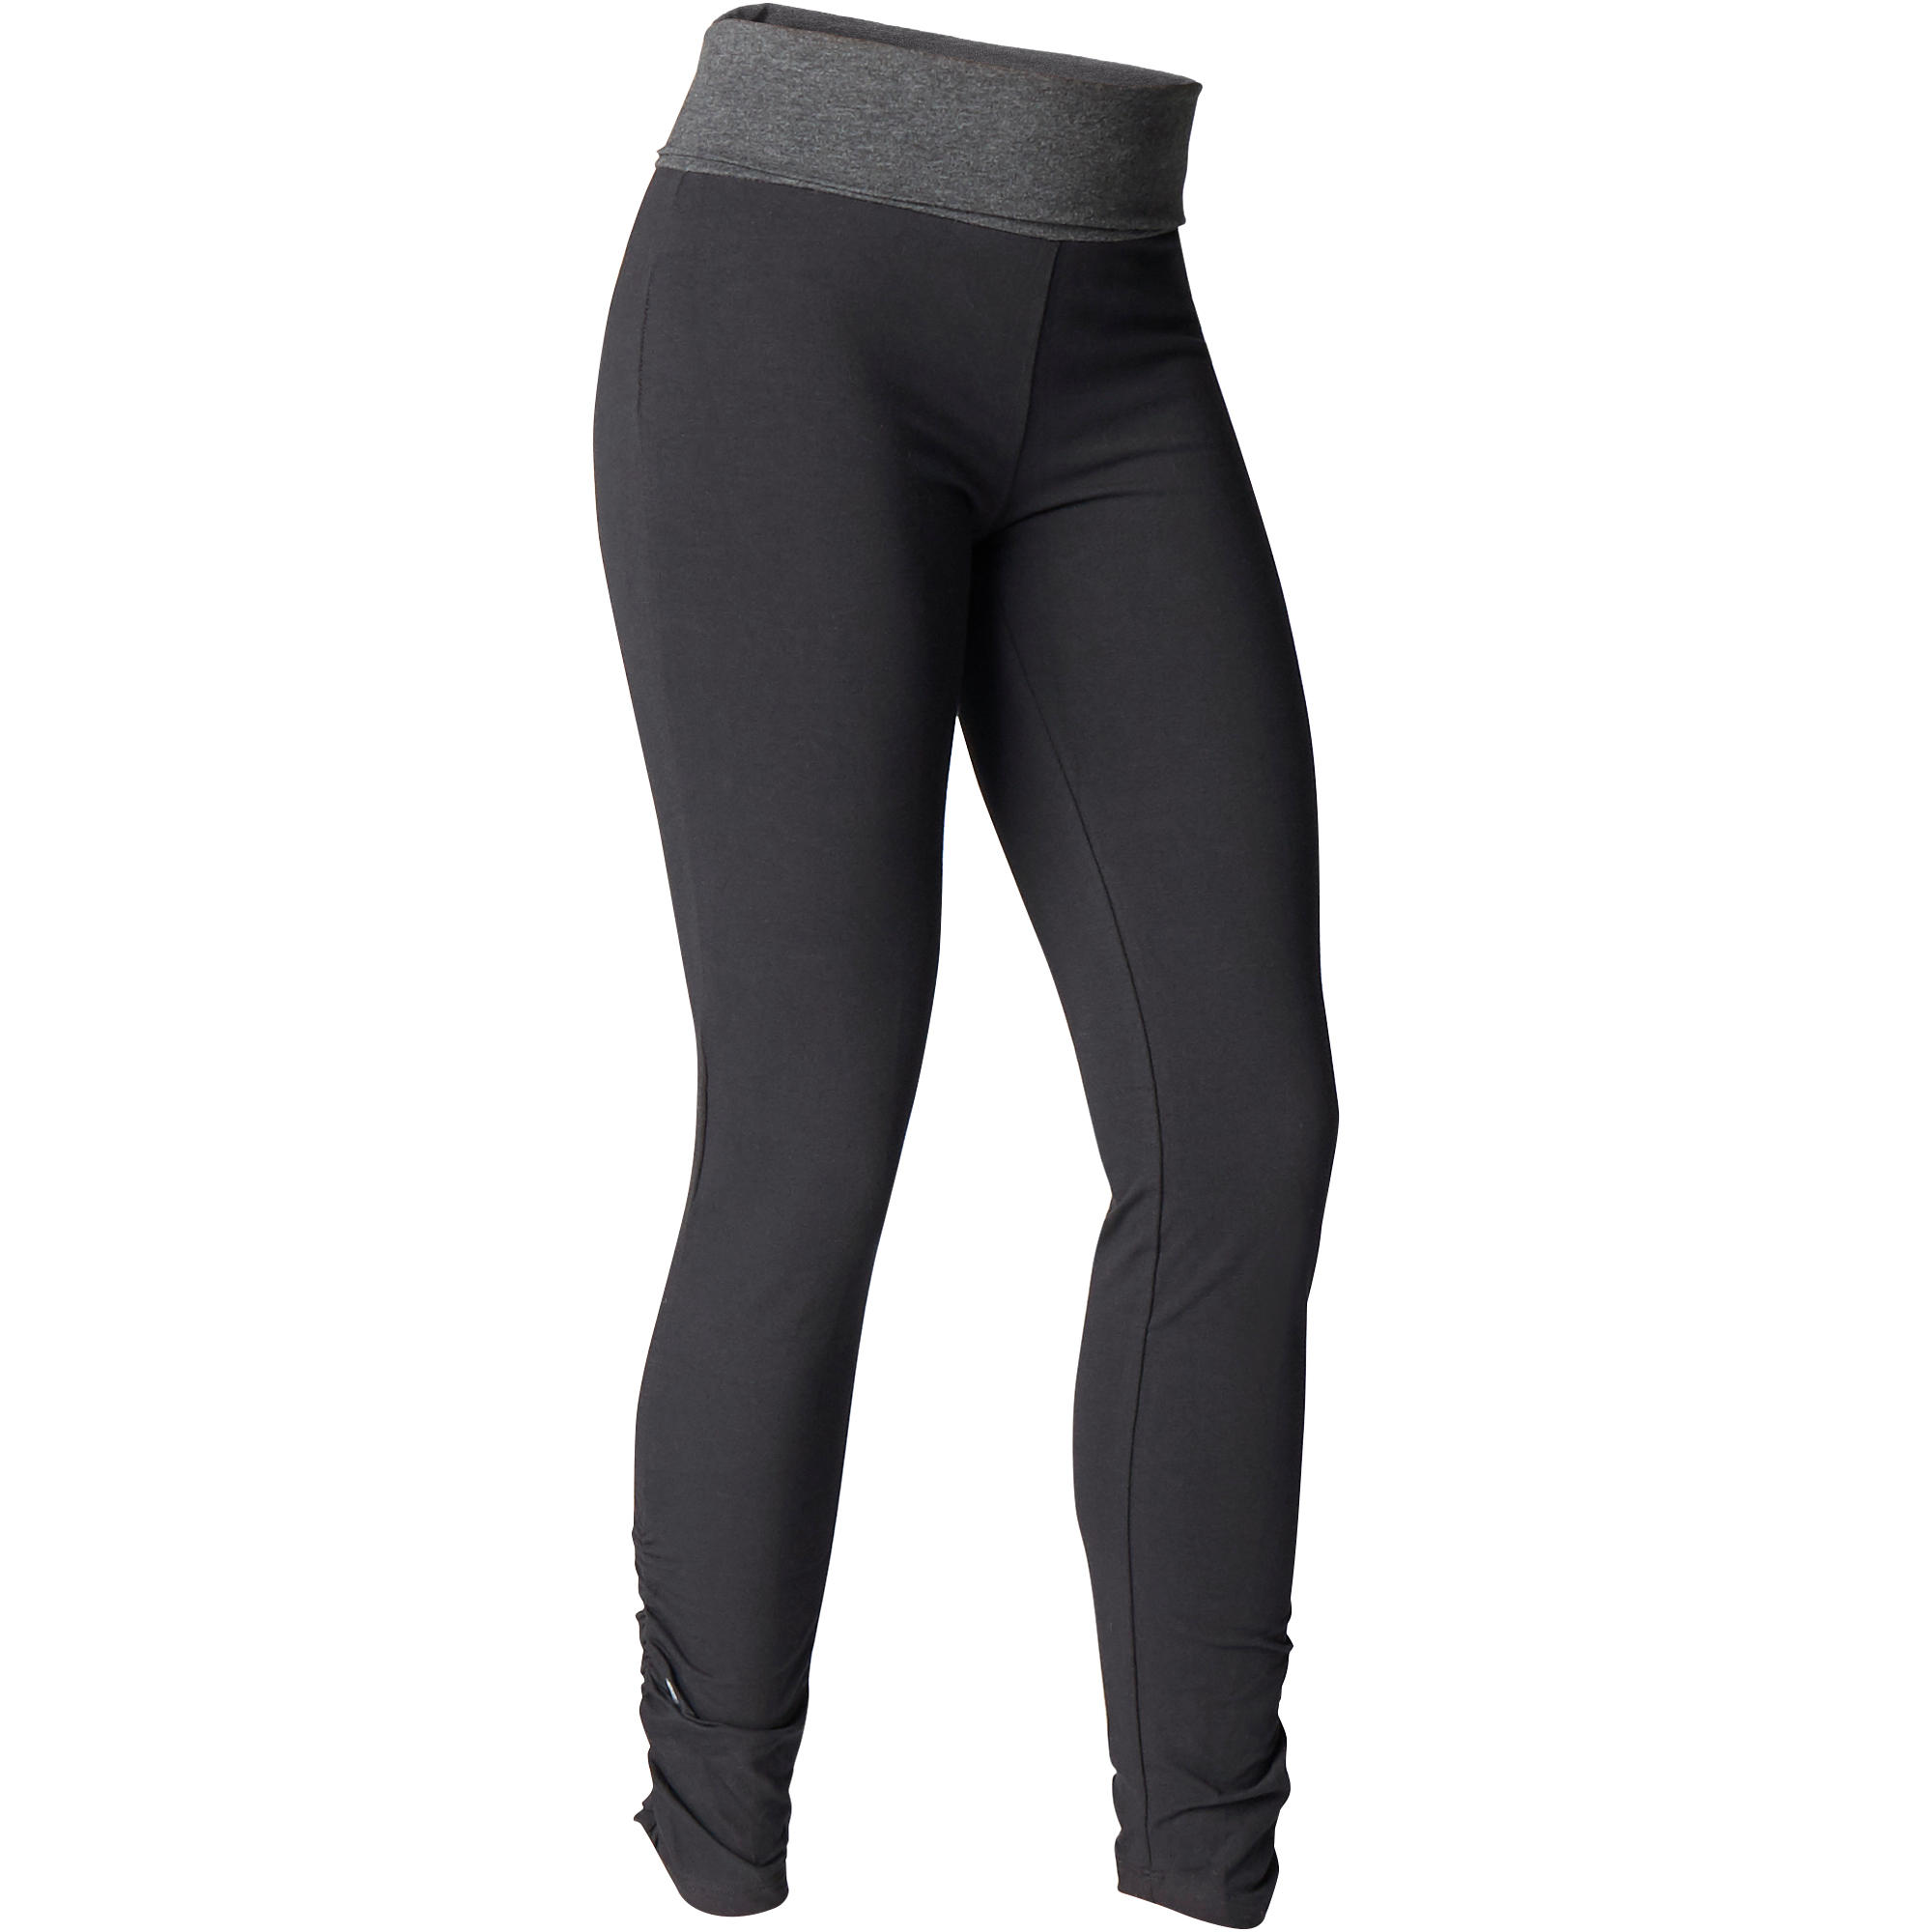 LEGGING YOGA DOUX...